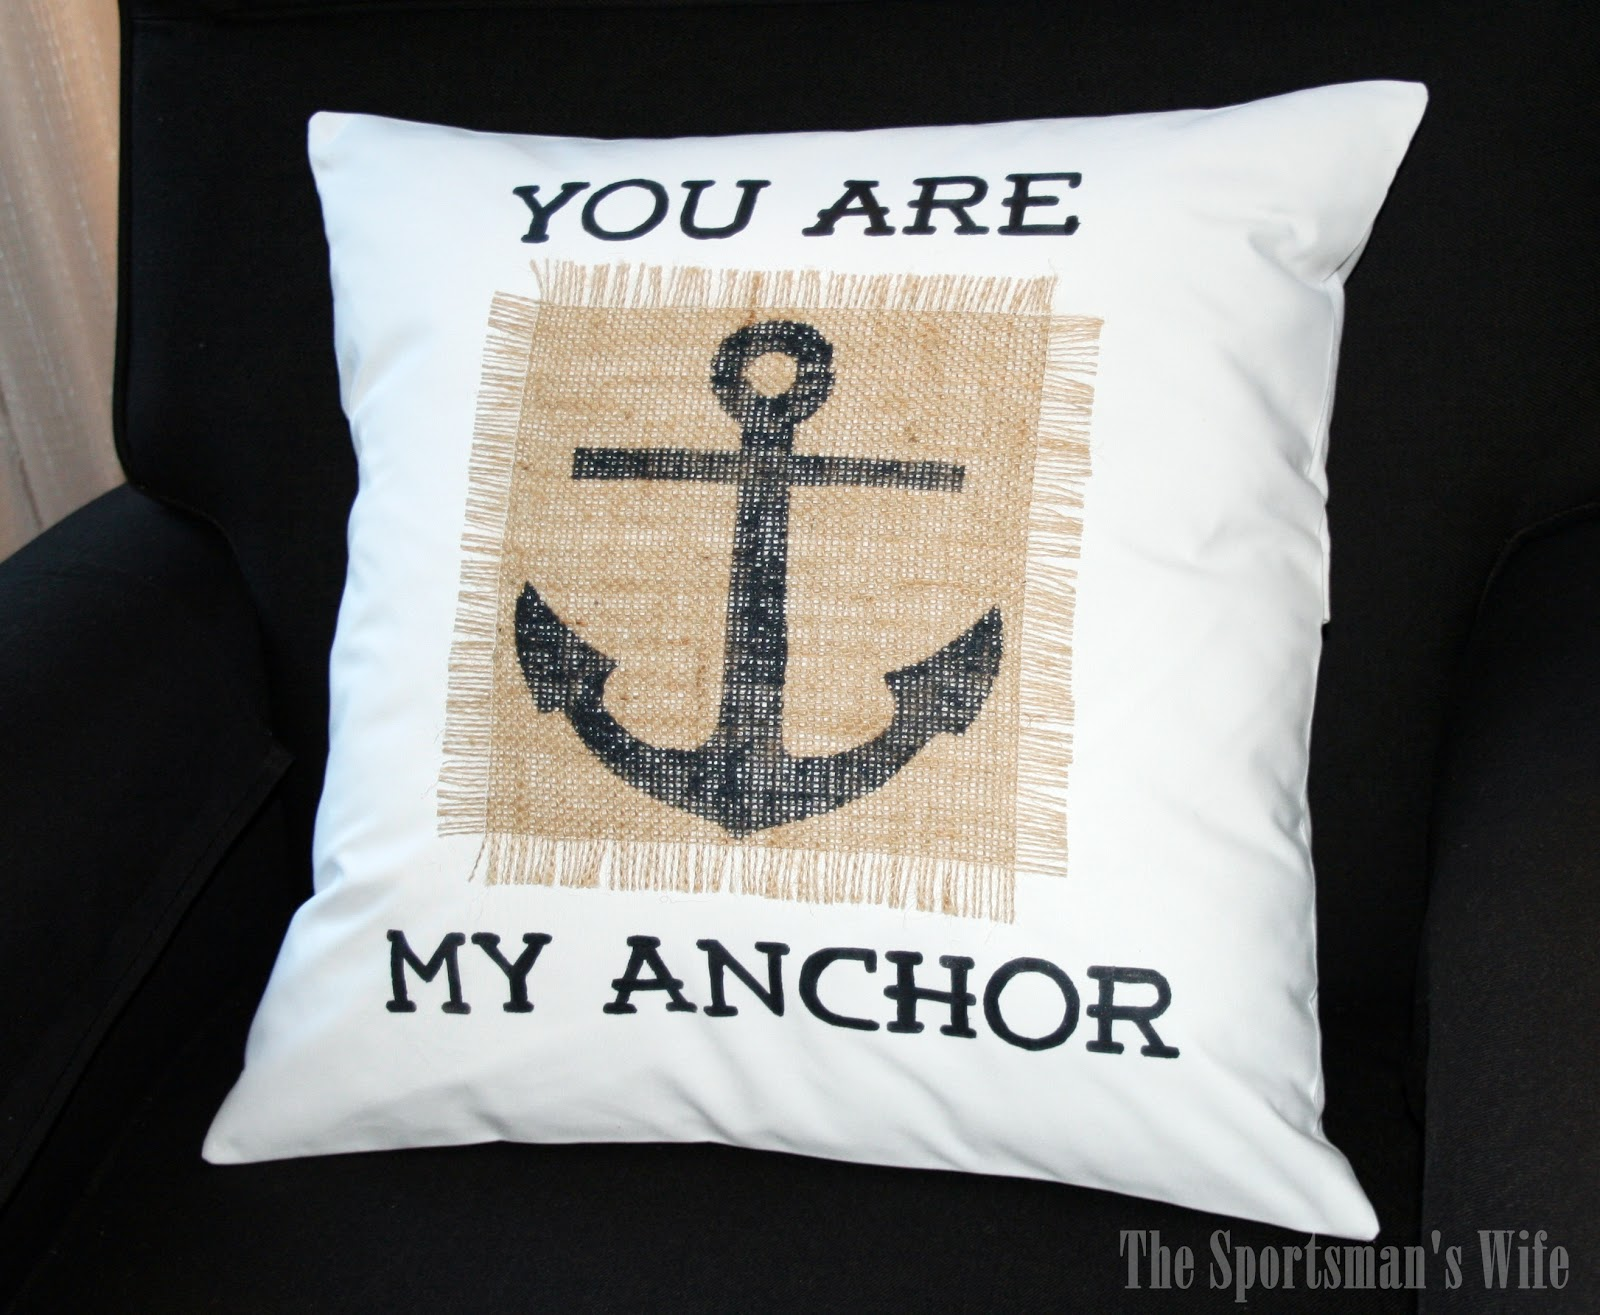 You Are My Anchor Quotes You Are My Anchor Quotes Quotesgram Eydt